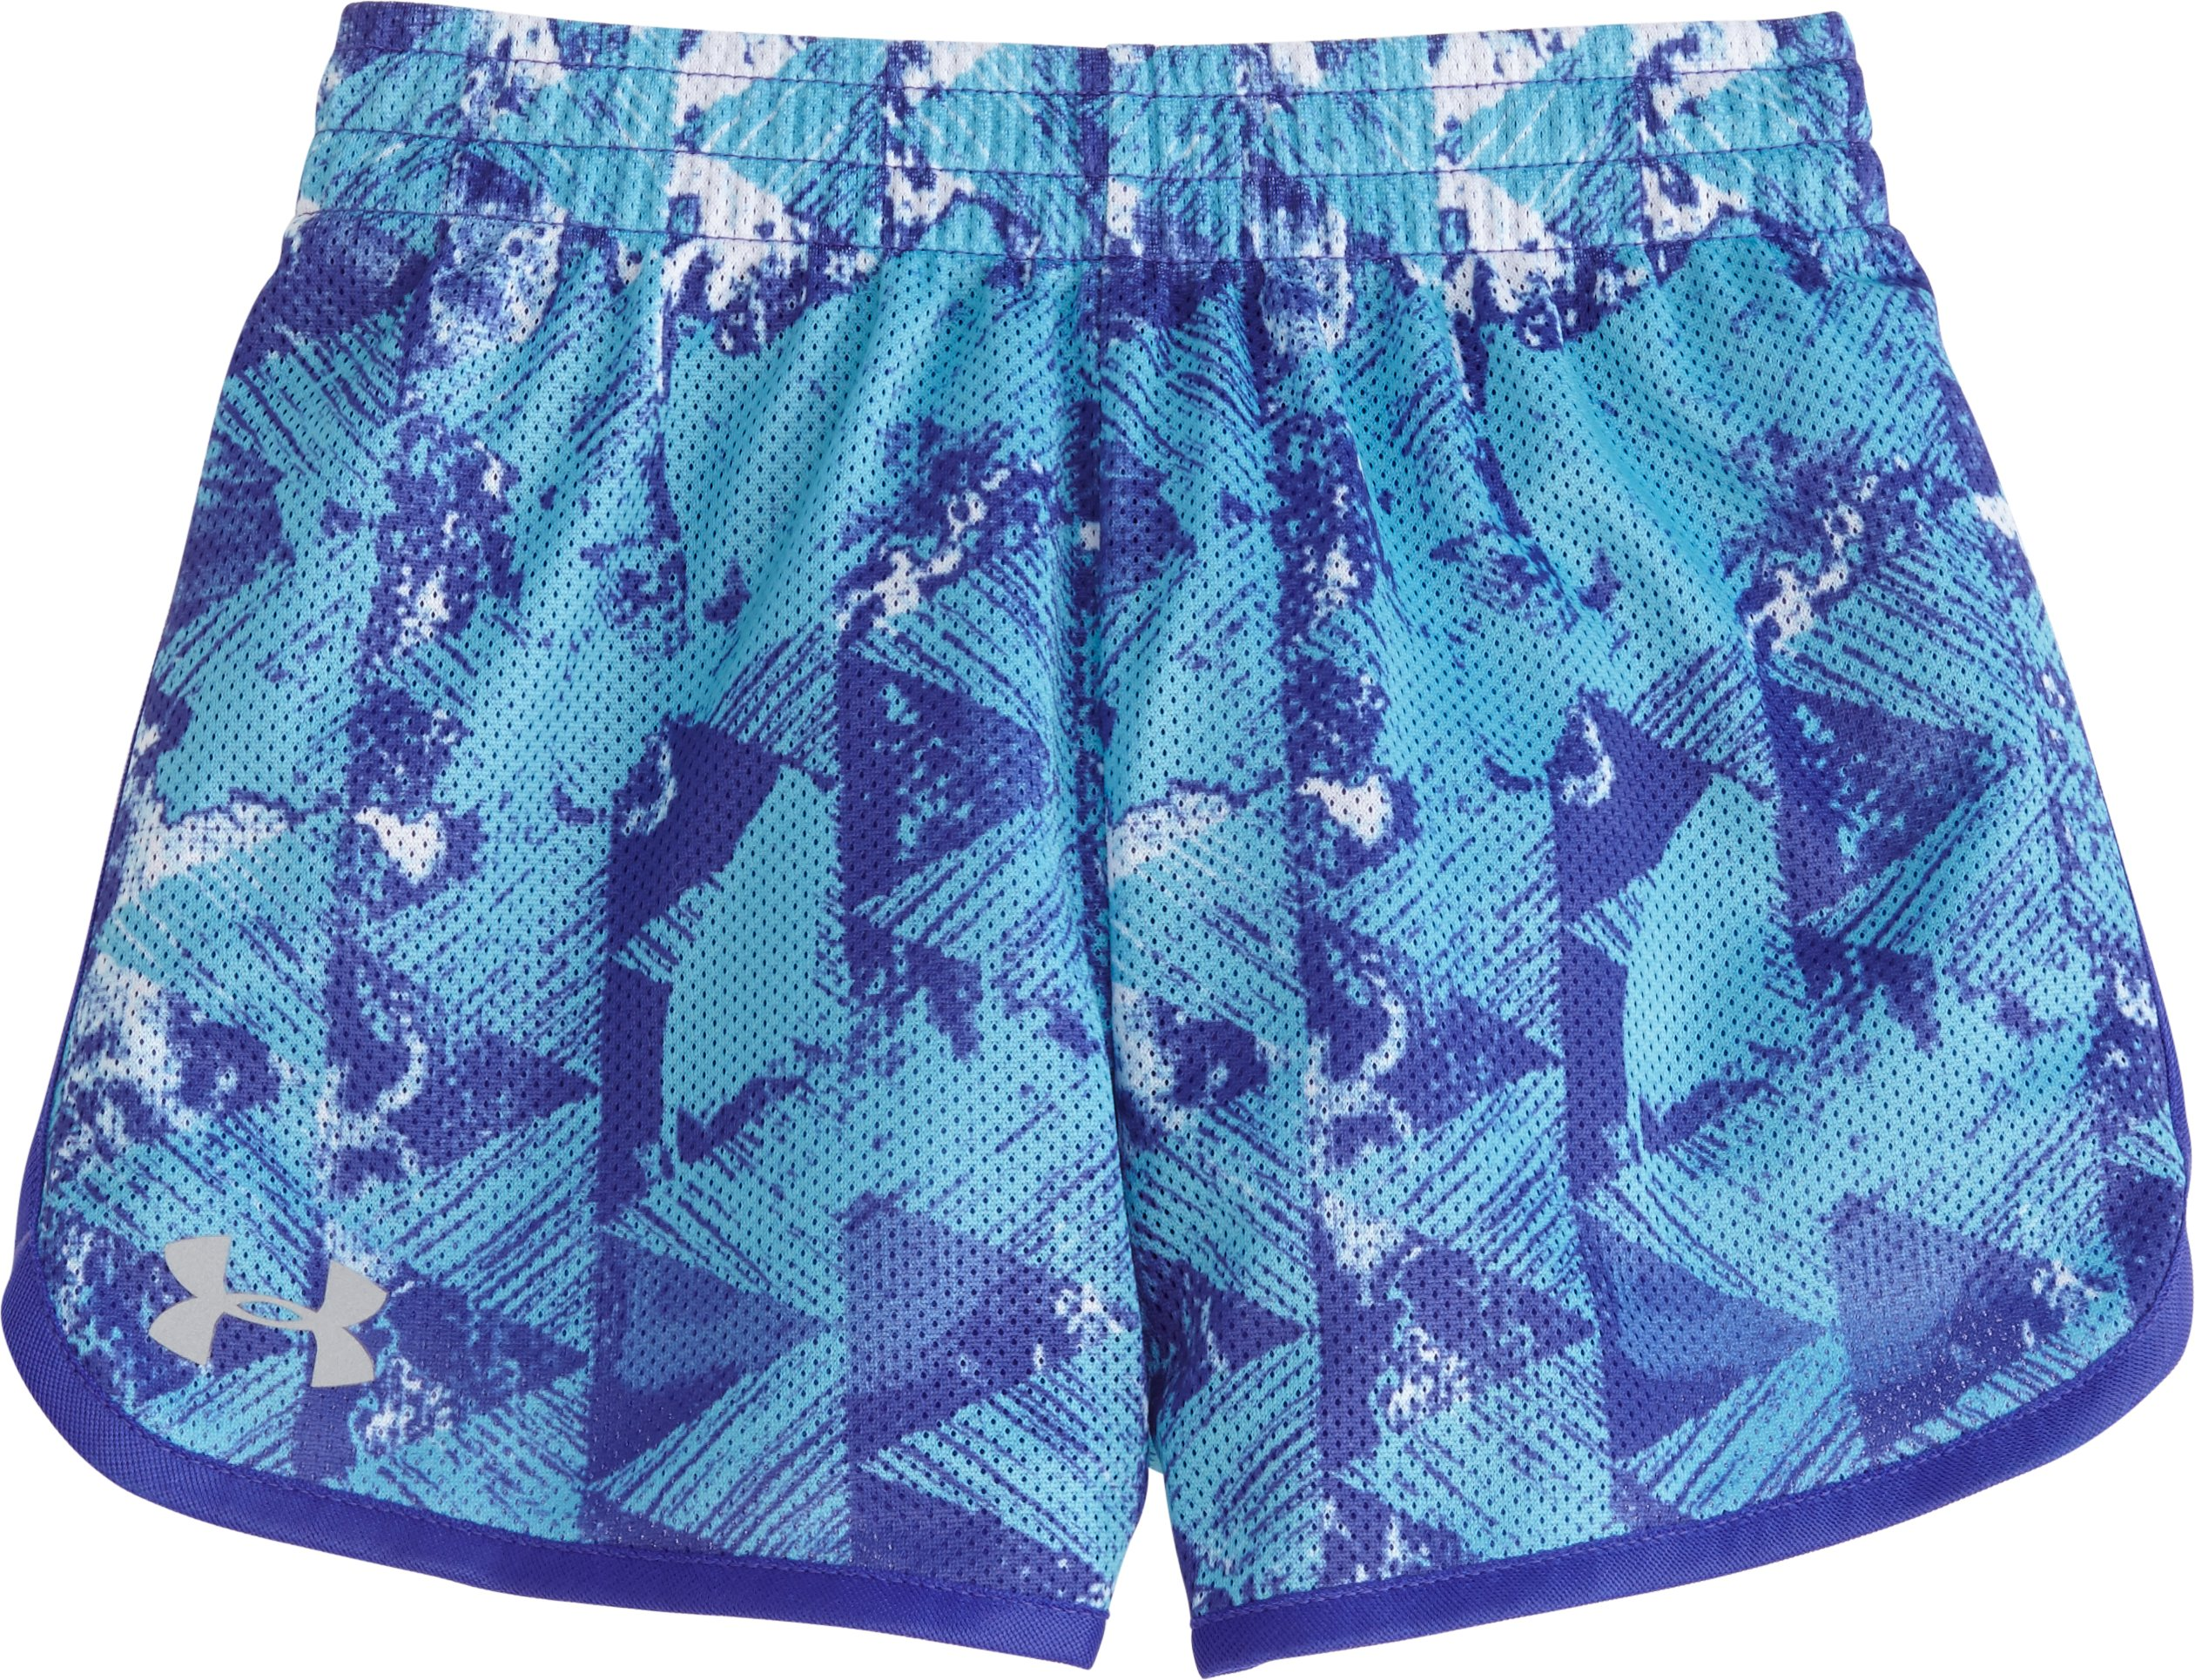 Girls' Toddler UA Knockout Essential Shorts, MERIDIAN BLUE